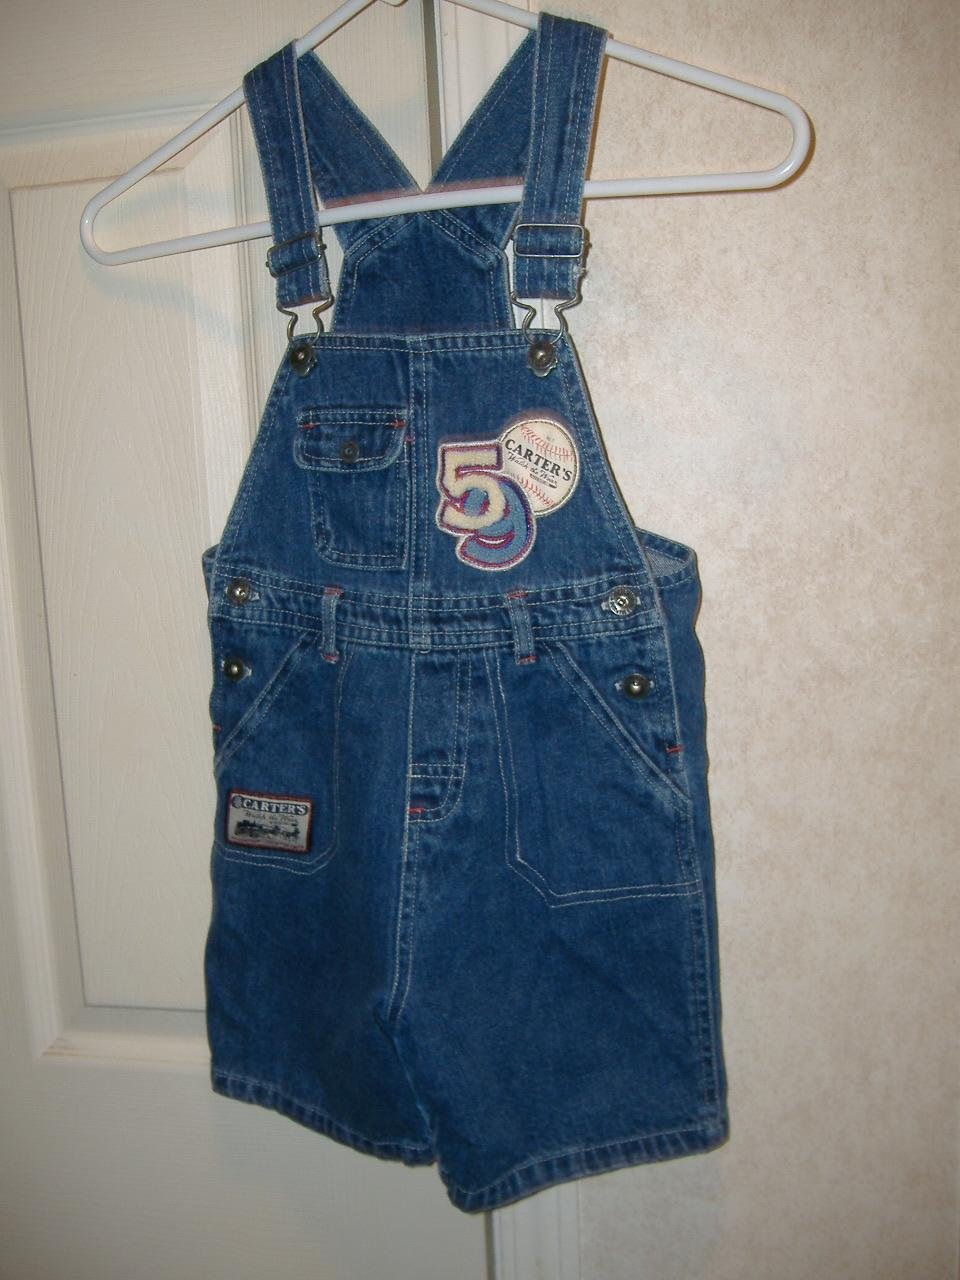 Boys Overalls Shorts By Carter's   Size 4T